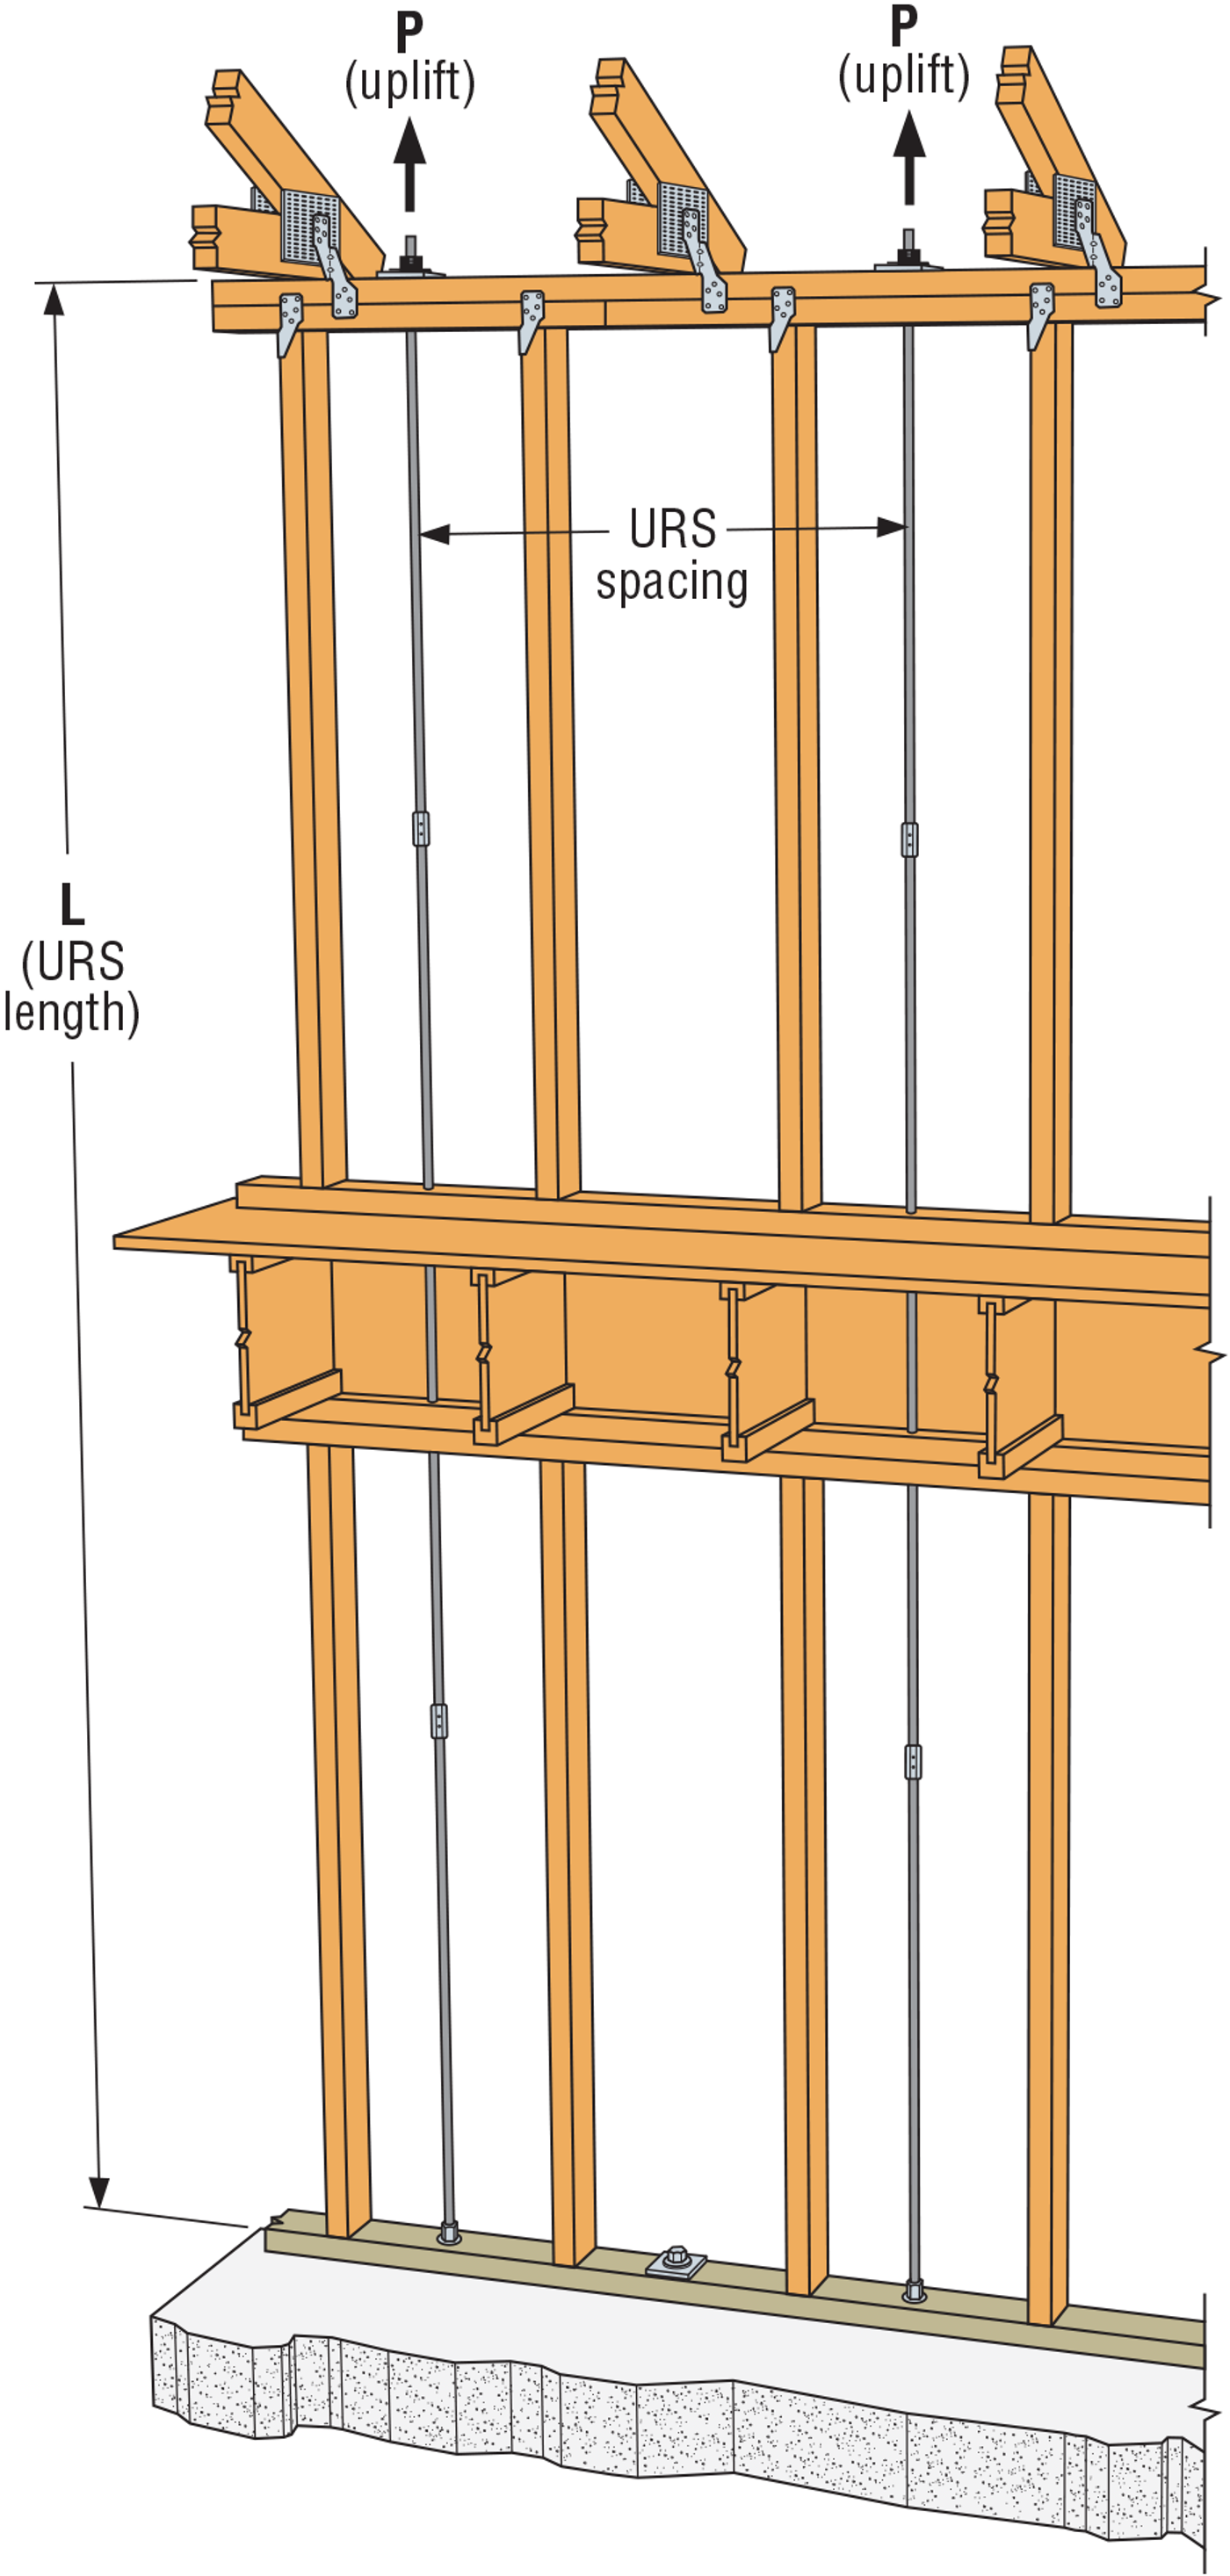 URS Design Specification Example